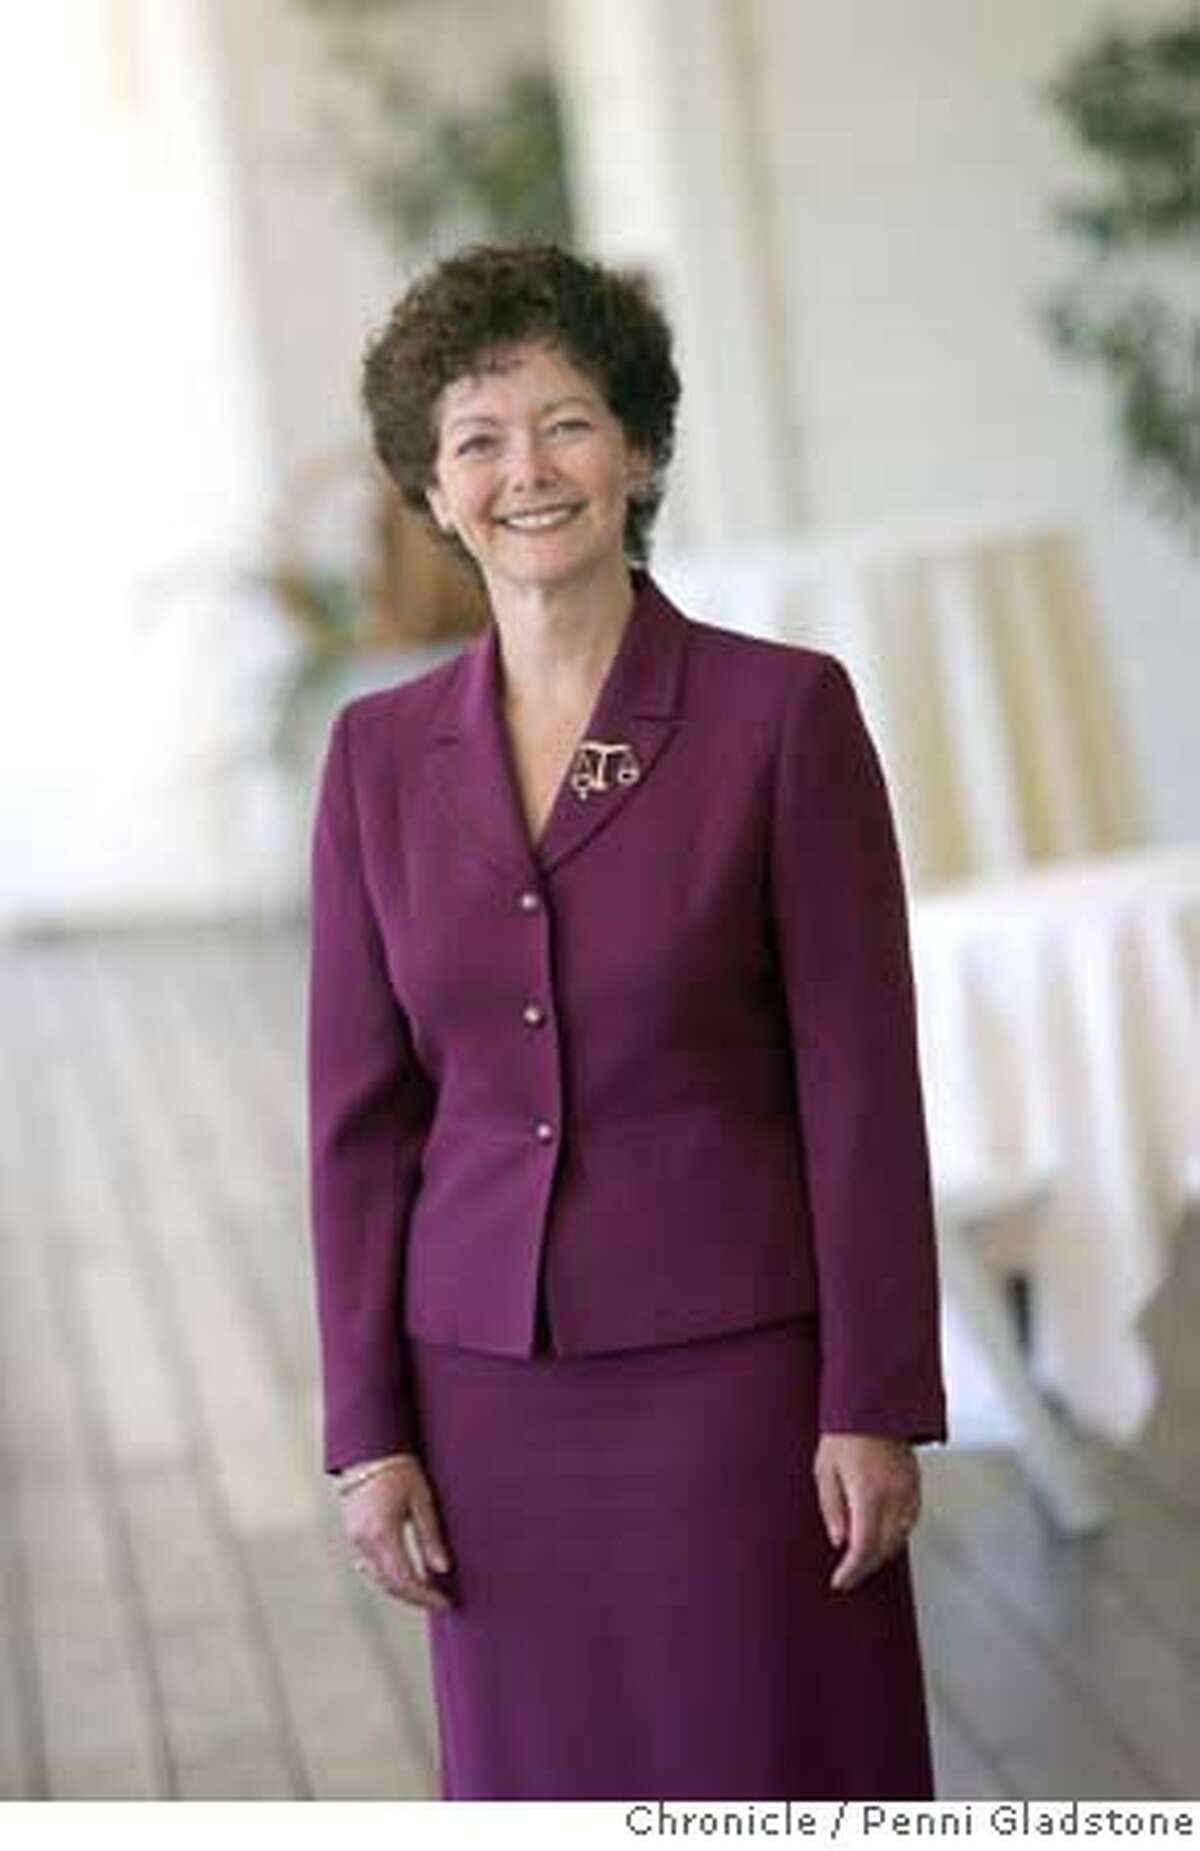 CARR_081_PG.JPG Santa Clara County District Attorney Dolores Carr Photographed in Napa as she was at a conference Event on 6/28/07 in Napa. Penni Gladstone / The Chronicle MANDATORY CREDIT FOR PHOTOG AND SF CHRONICLE/NO SALES-MAGS OUT